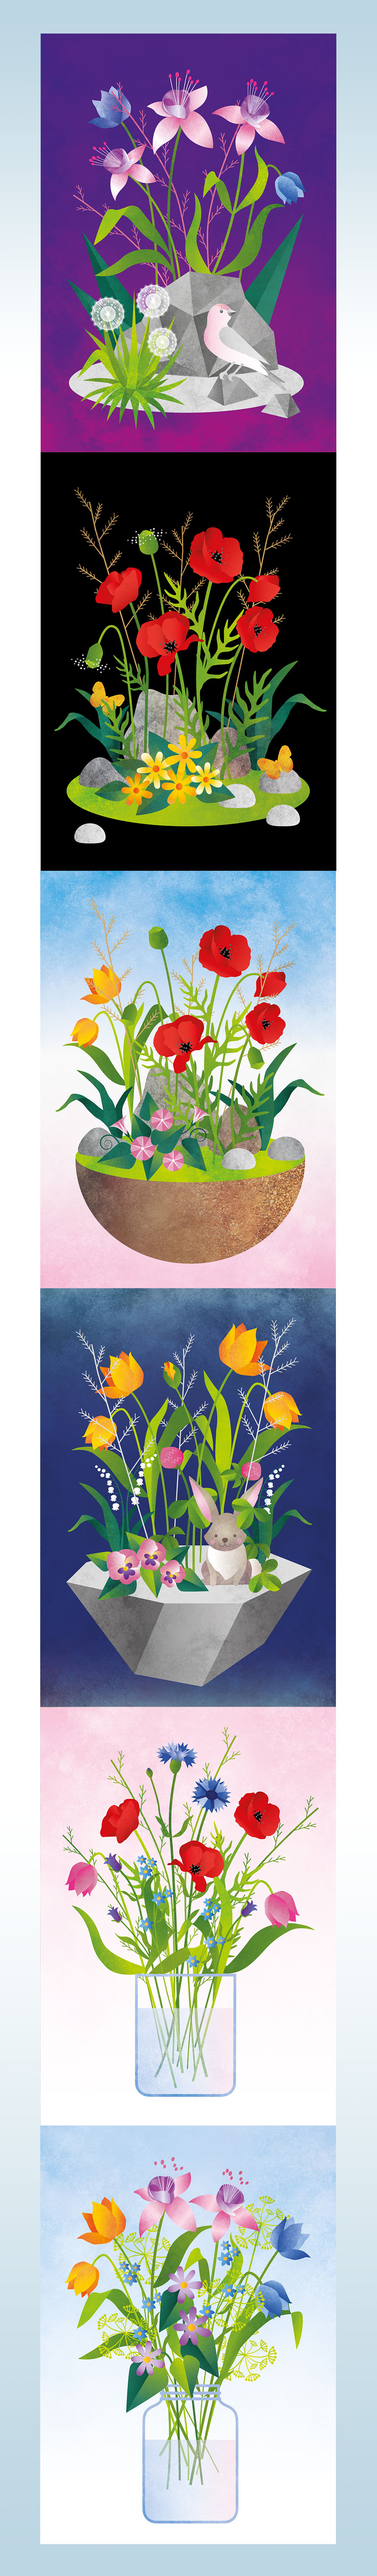 Illustration _Project _Flowers2